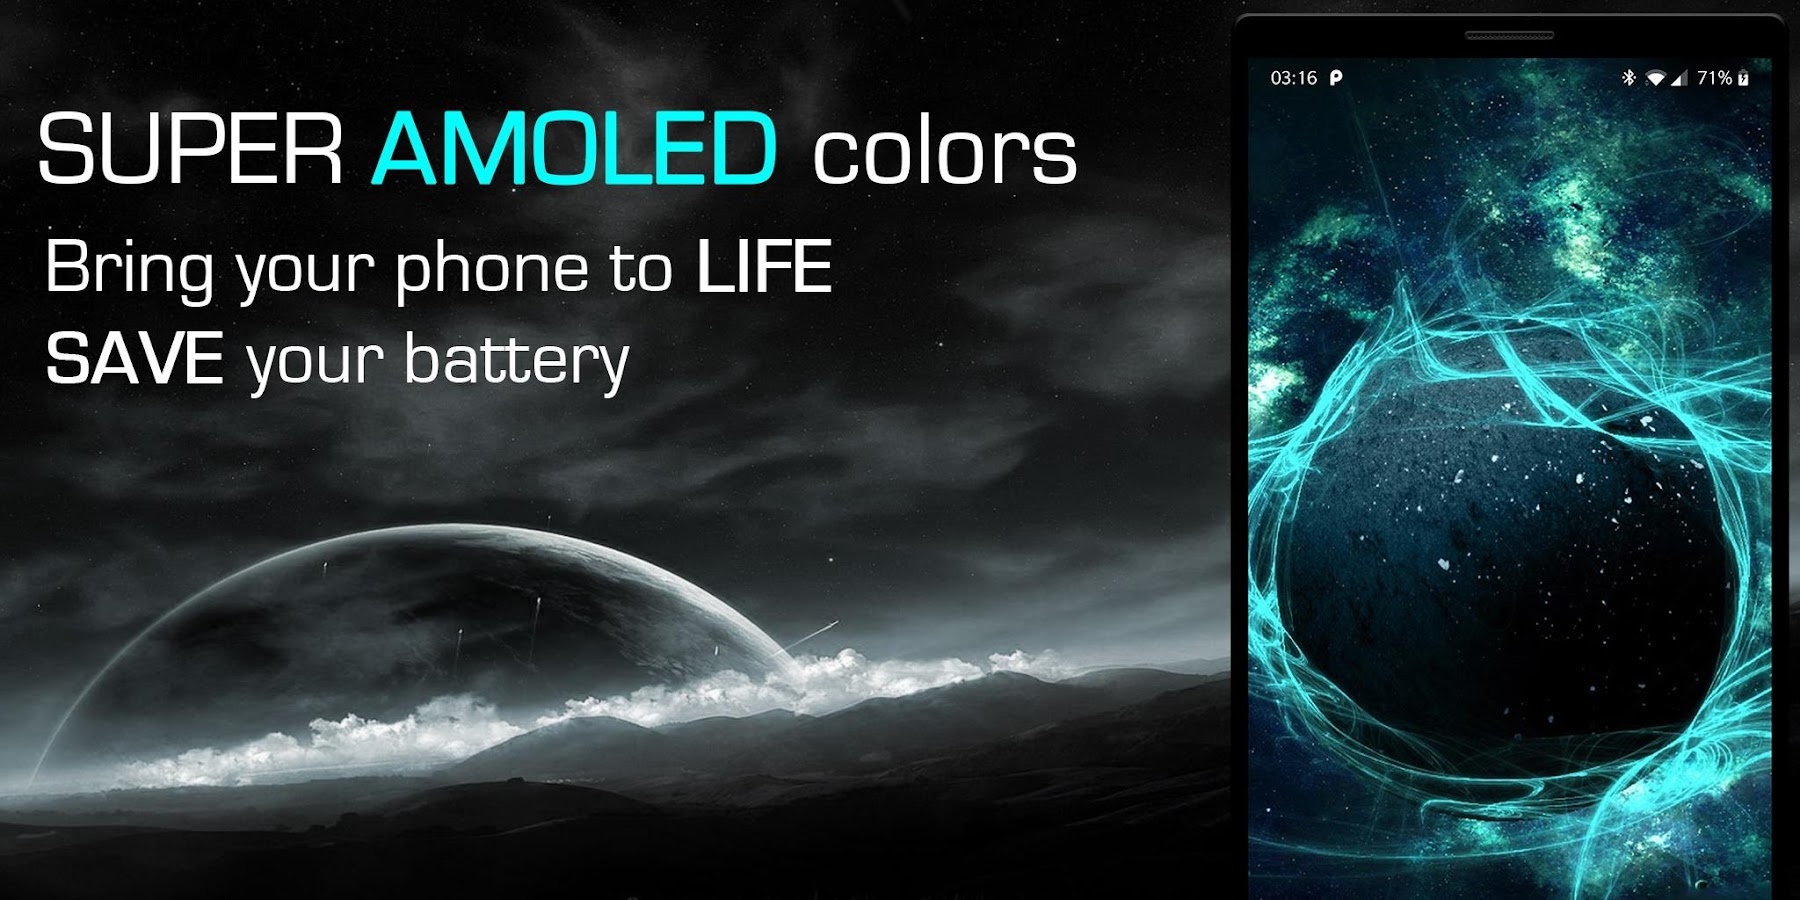 Live Wallpapers 3D--Animated AMOLED 4D Backgrounds 1.68 screenshot 1 ...